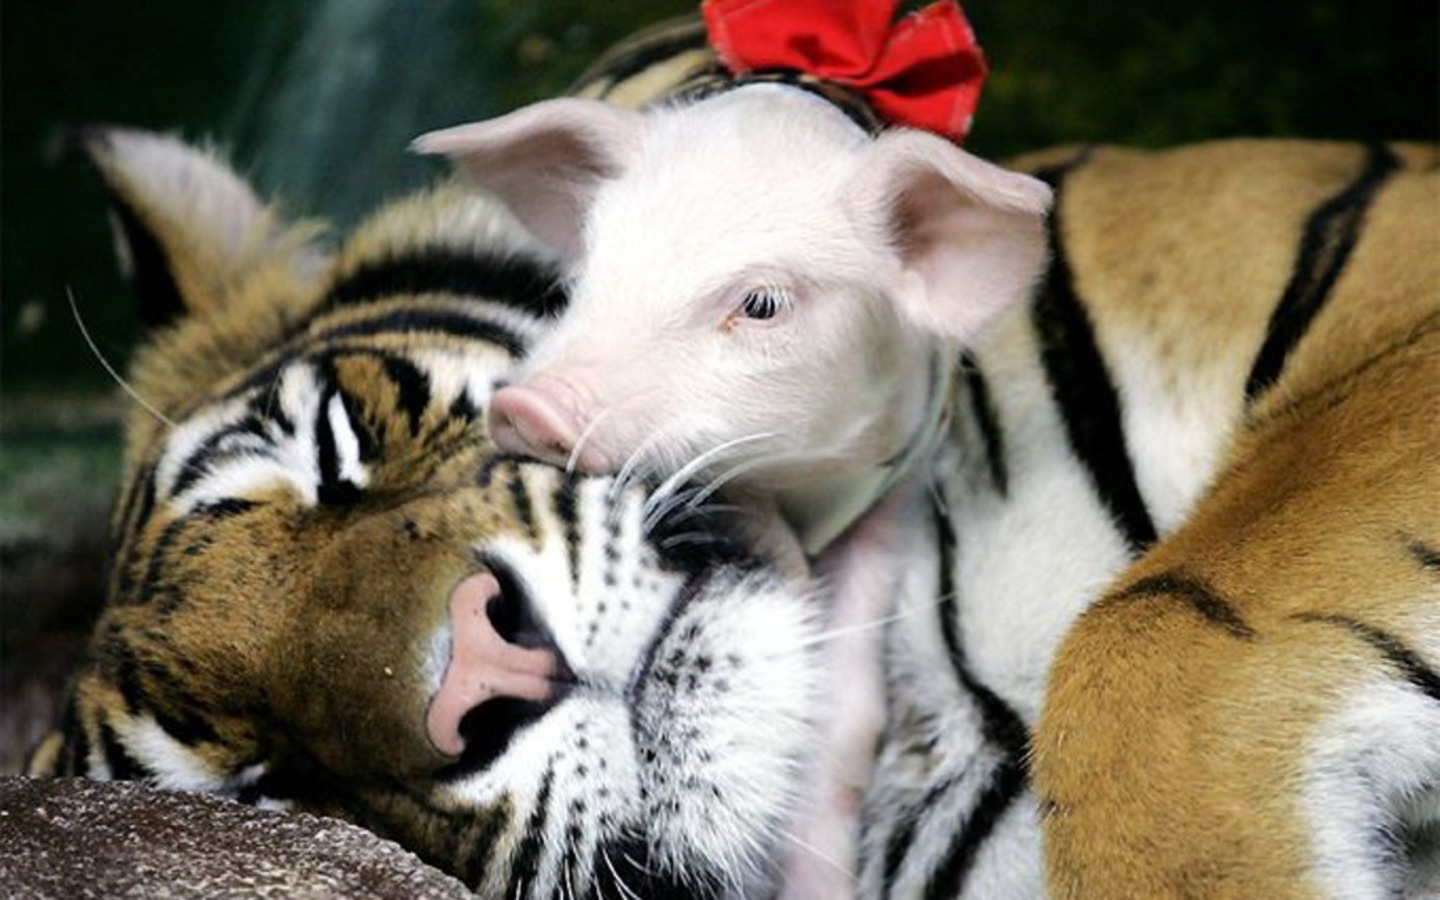 Baby Pig on Mom Tiger